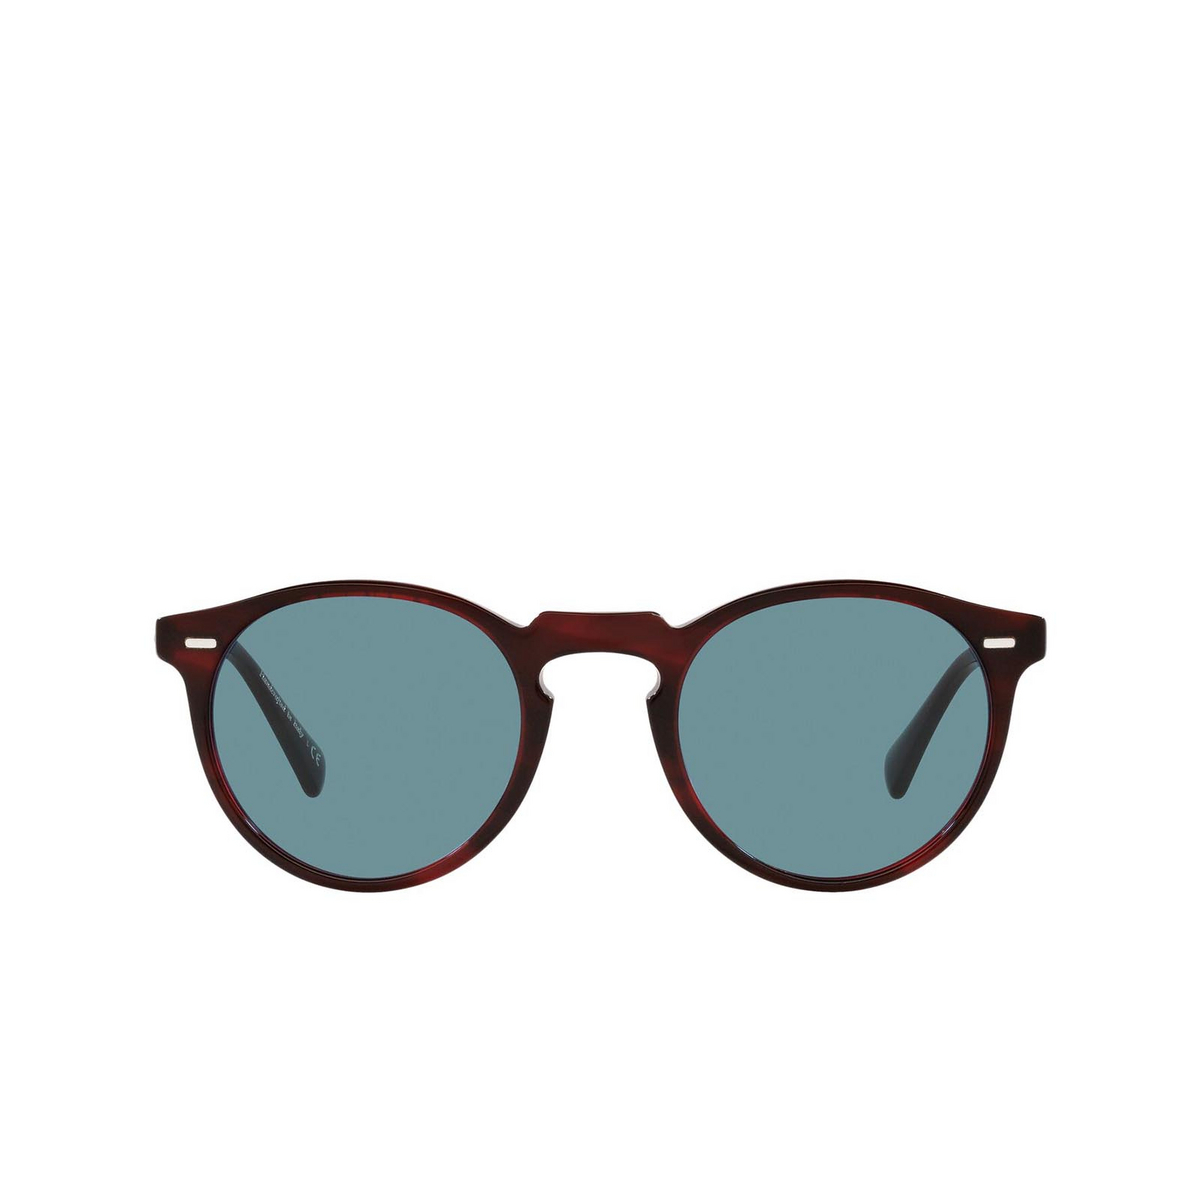 Oliver Peoples® Round Sunglasses: Gregory Peck Sun OV5217S color Bordeaux Bark 167556 - front view.